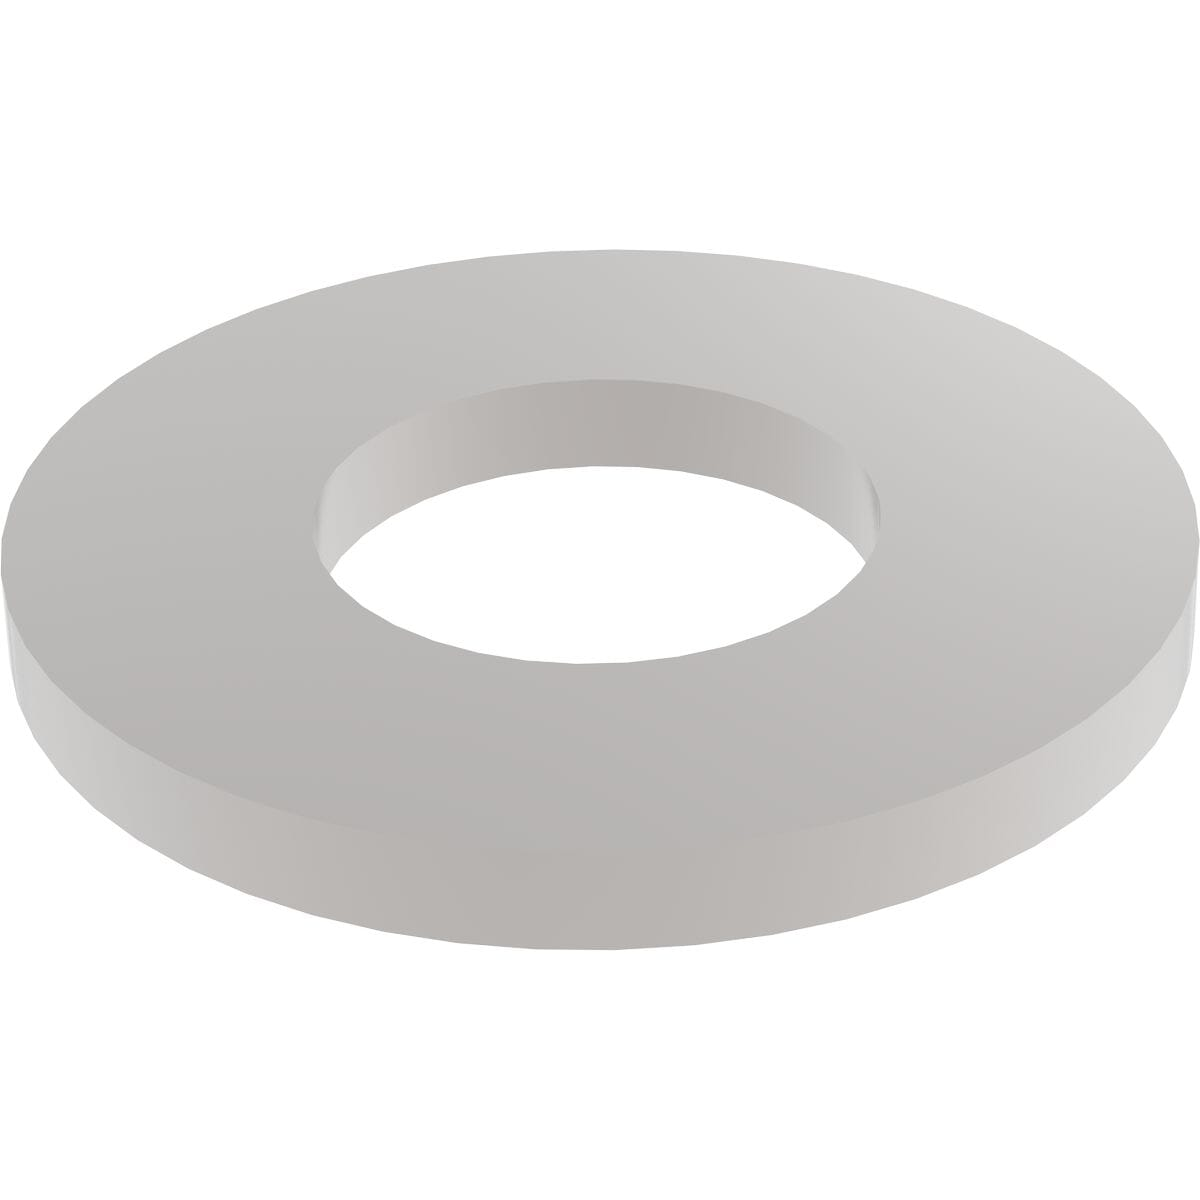 A2 STAINLESS STEEL Penny Washers M12 12mm Internal Diameter